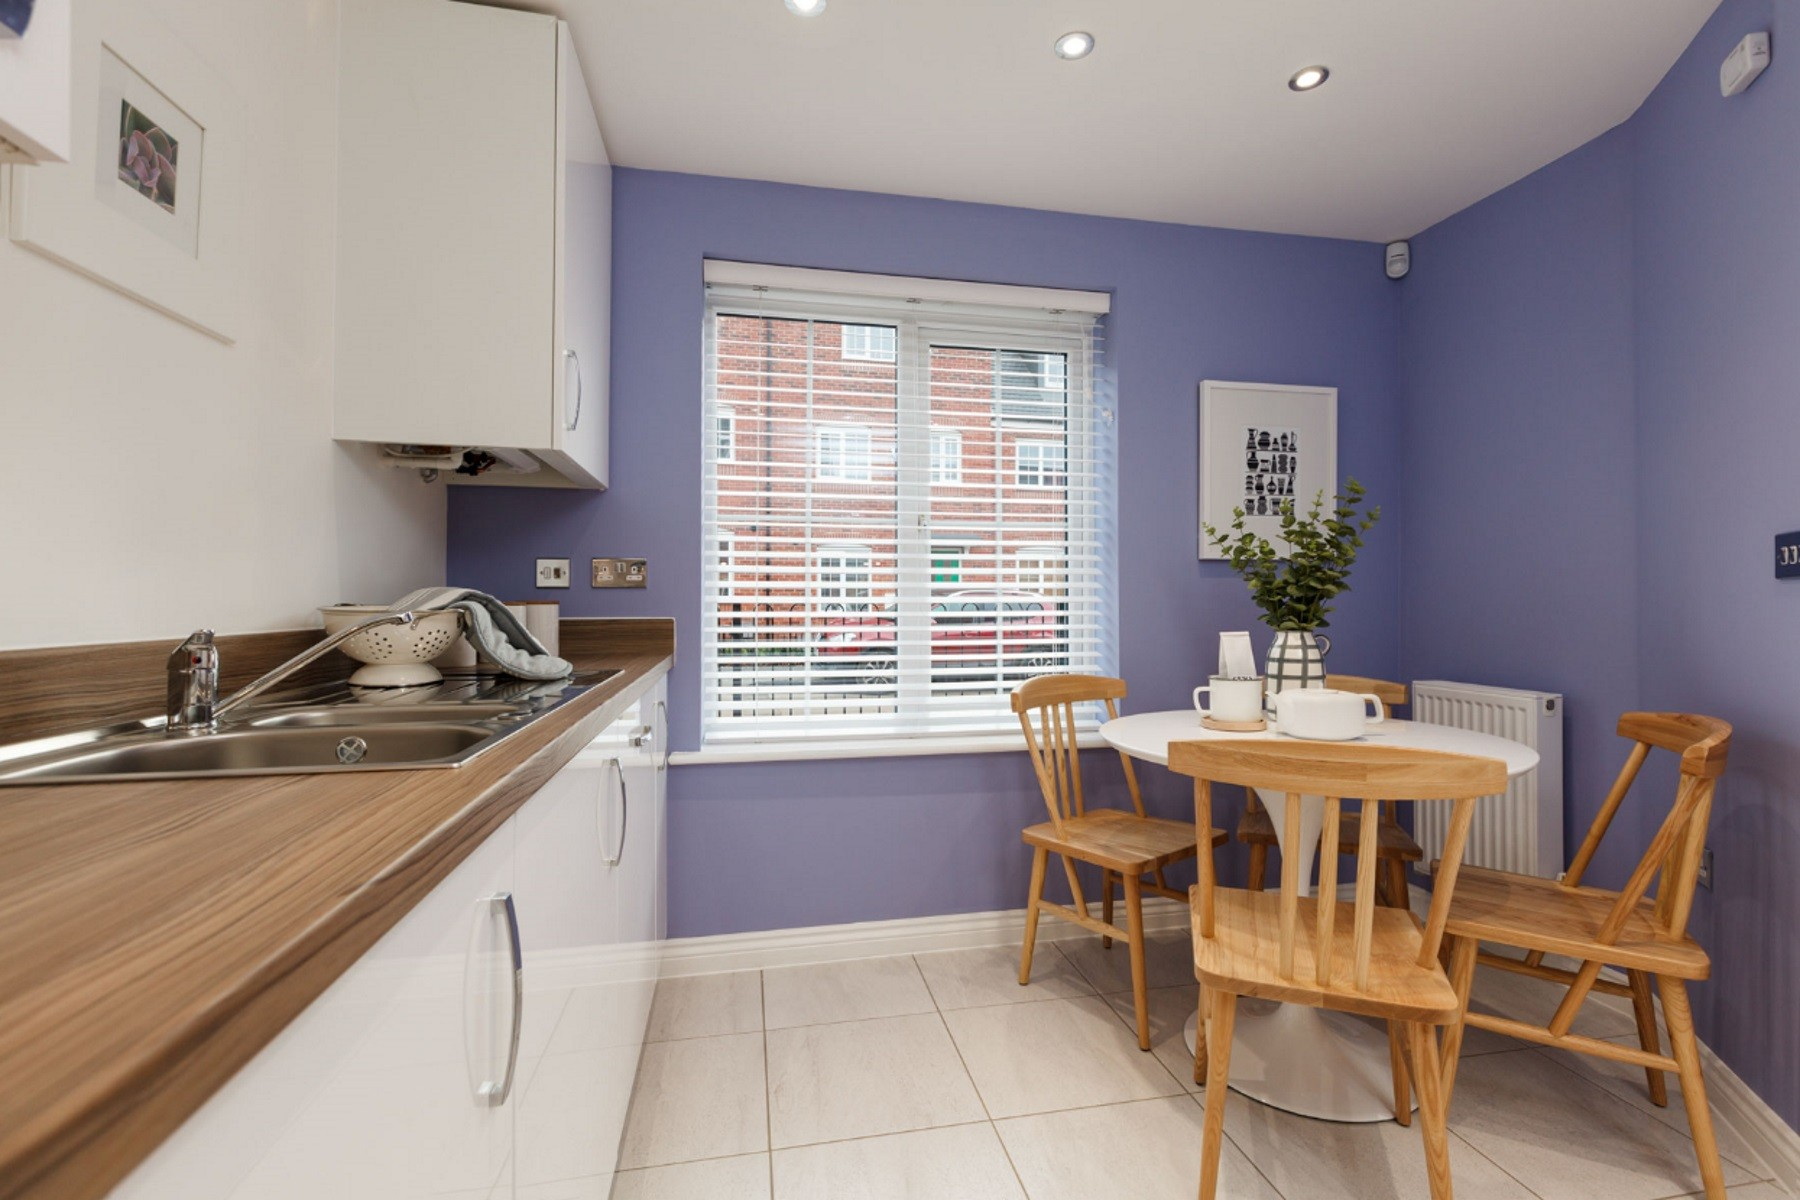 TW Exeter - Cranbrook - Crofton example kitchen 3